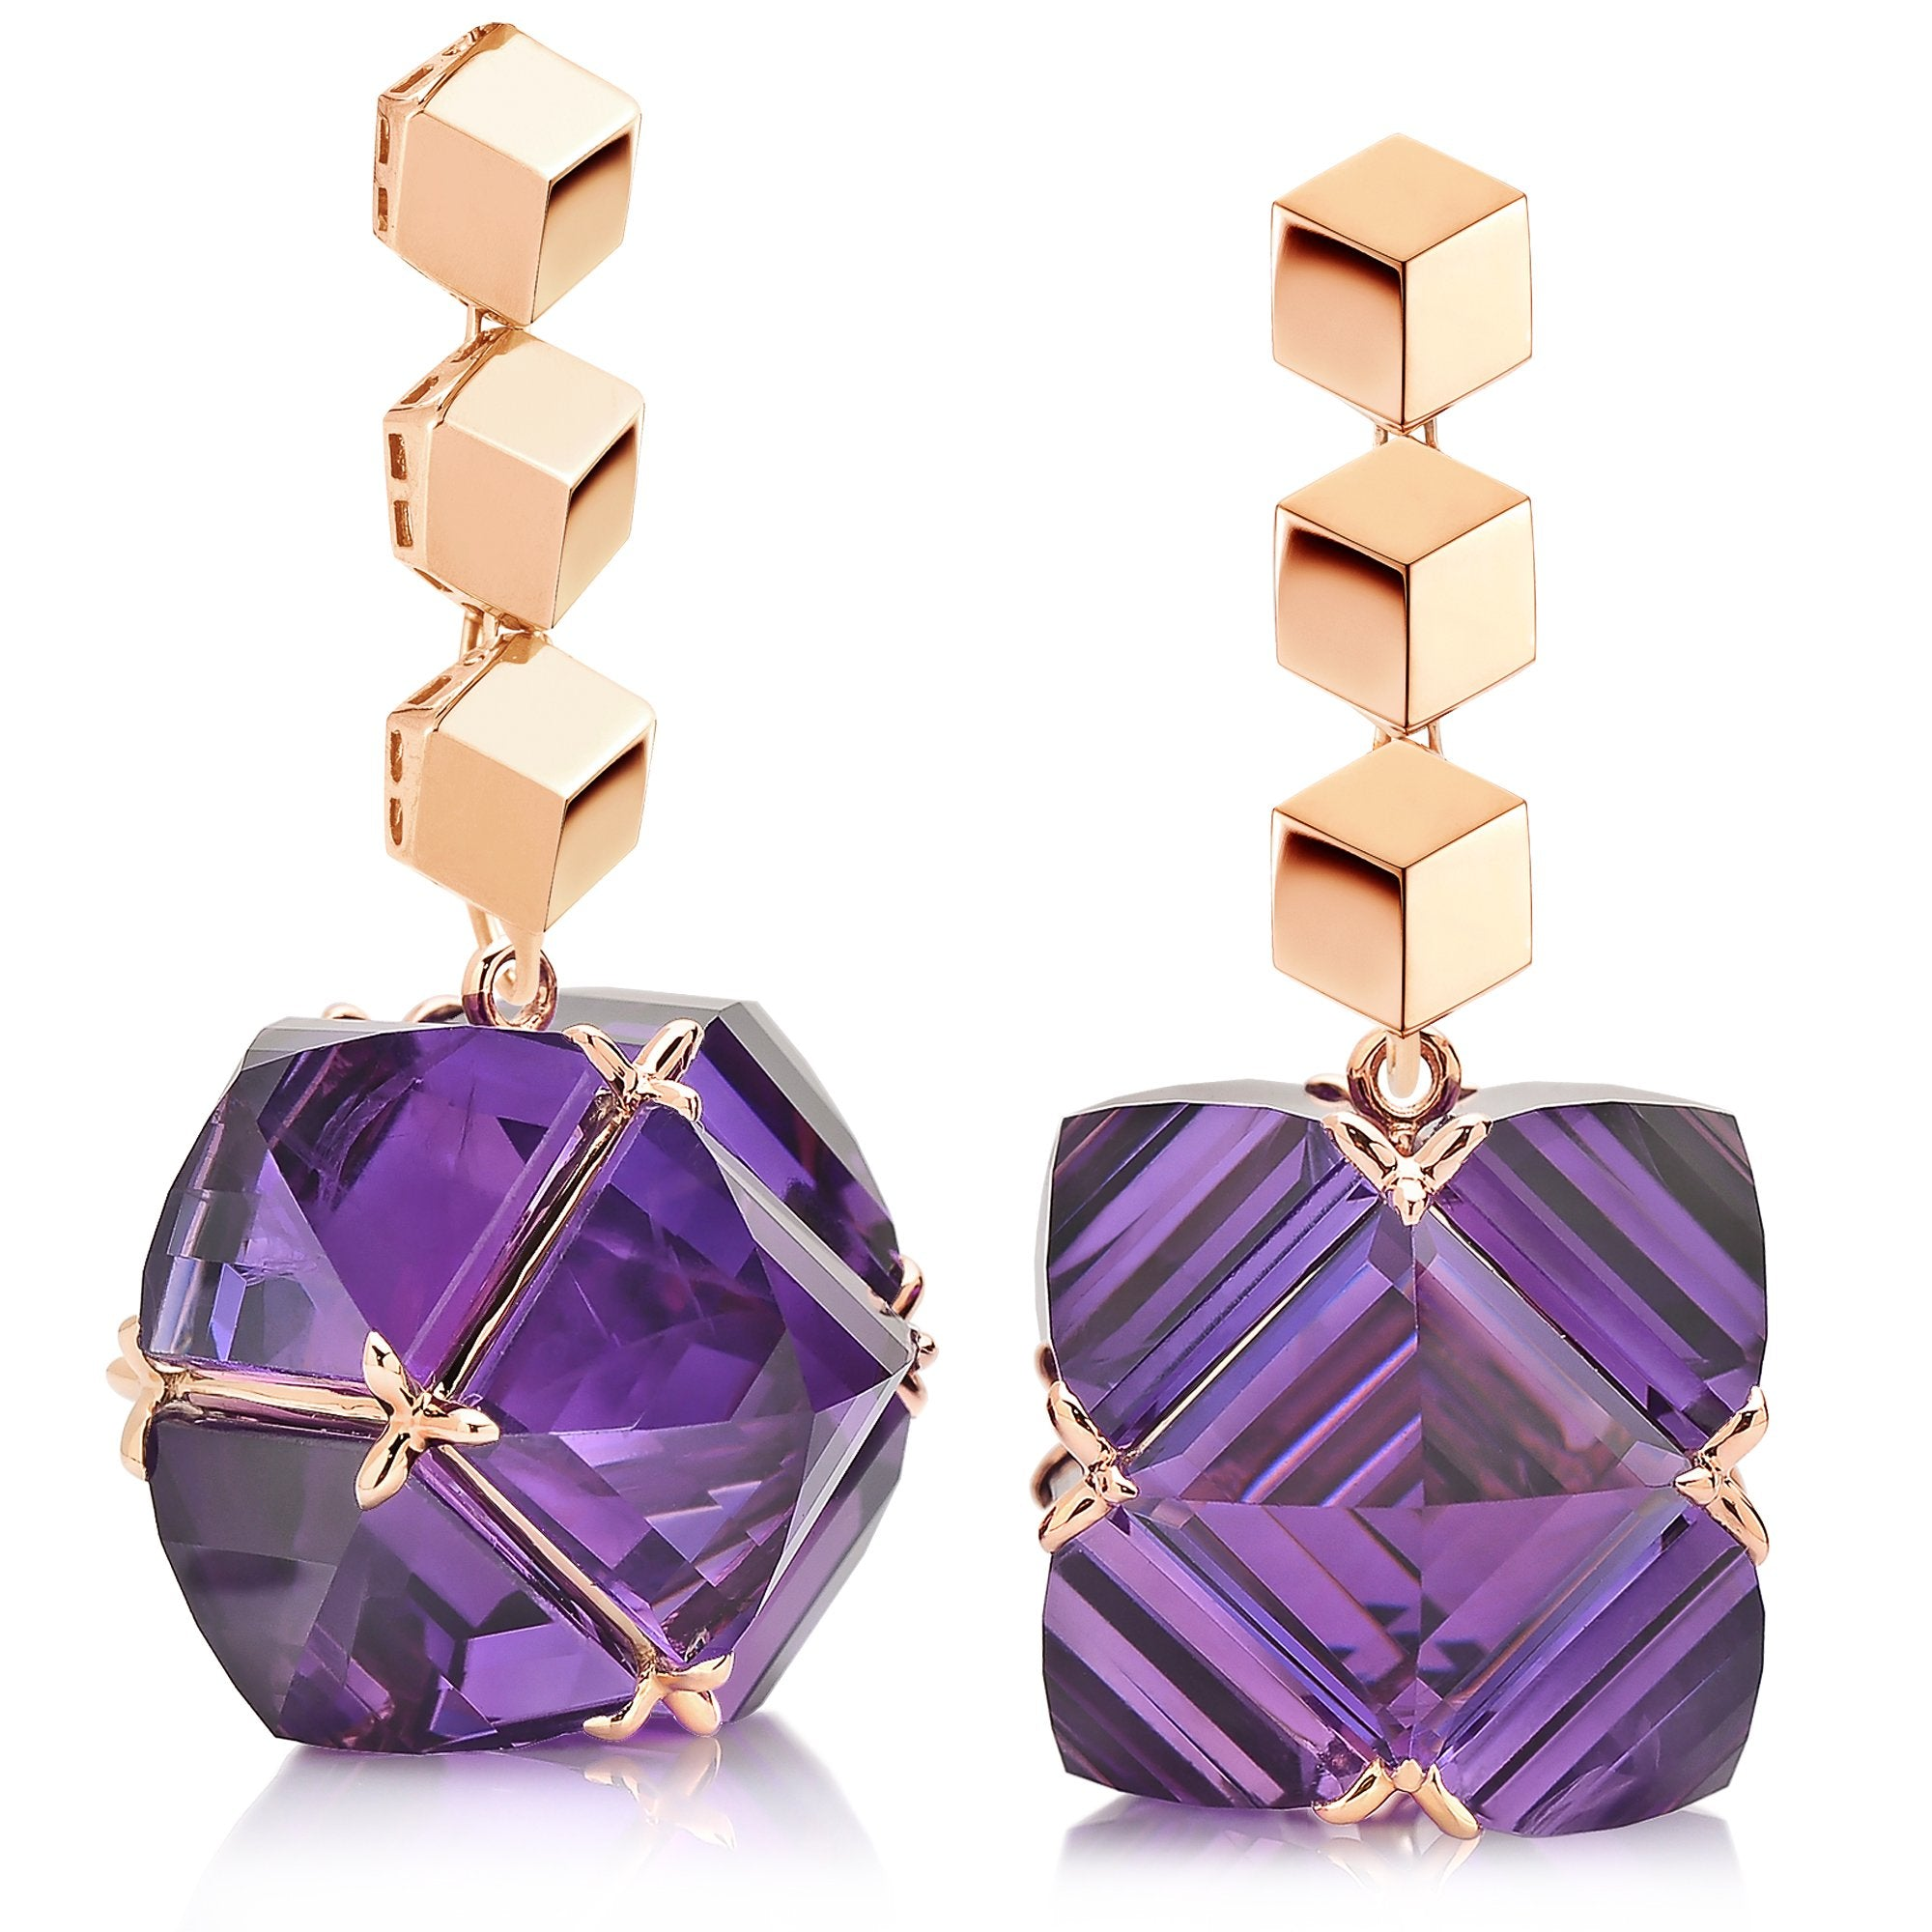 Rose Gold 'Brillante®' and Amethyst 'Very PC'® Earrings, Grande - Paolo Costagli - 1